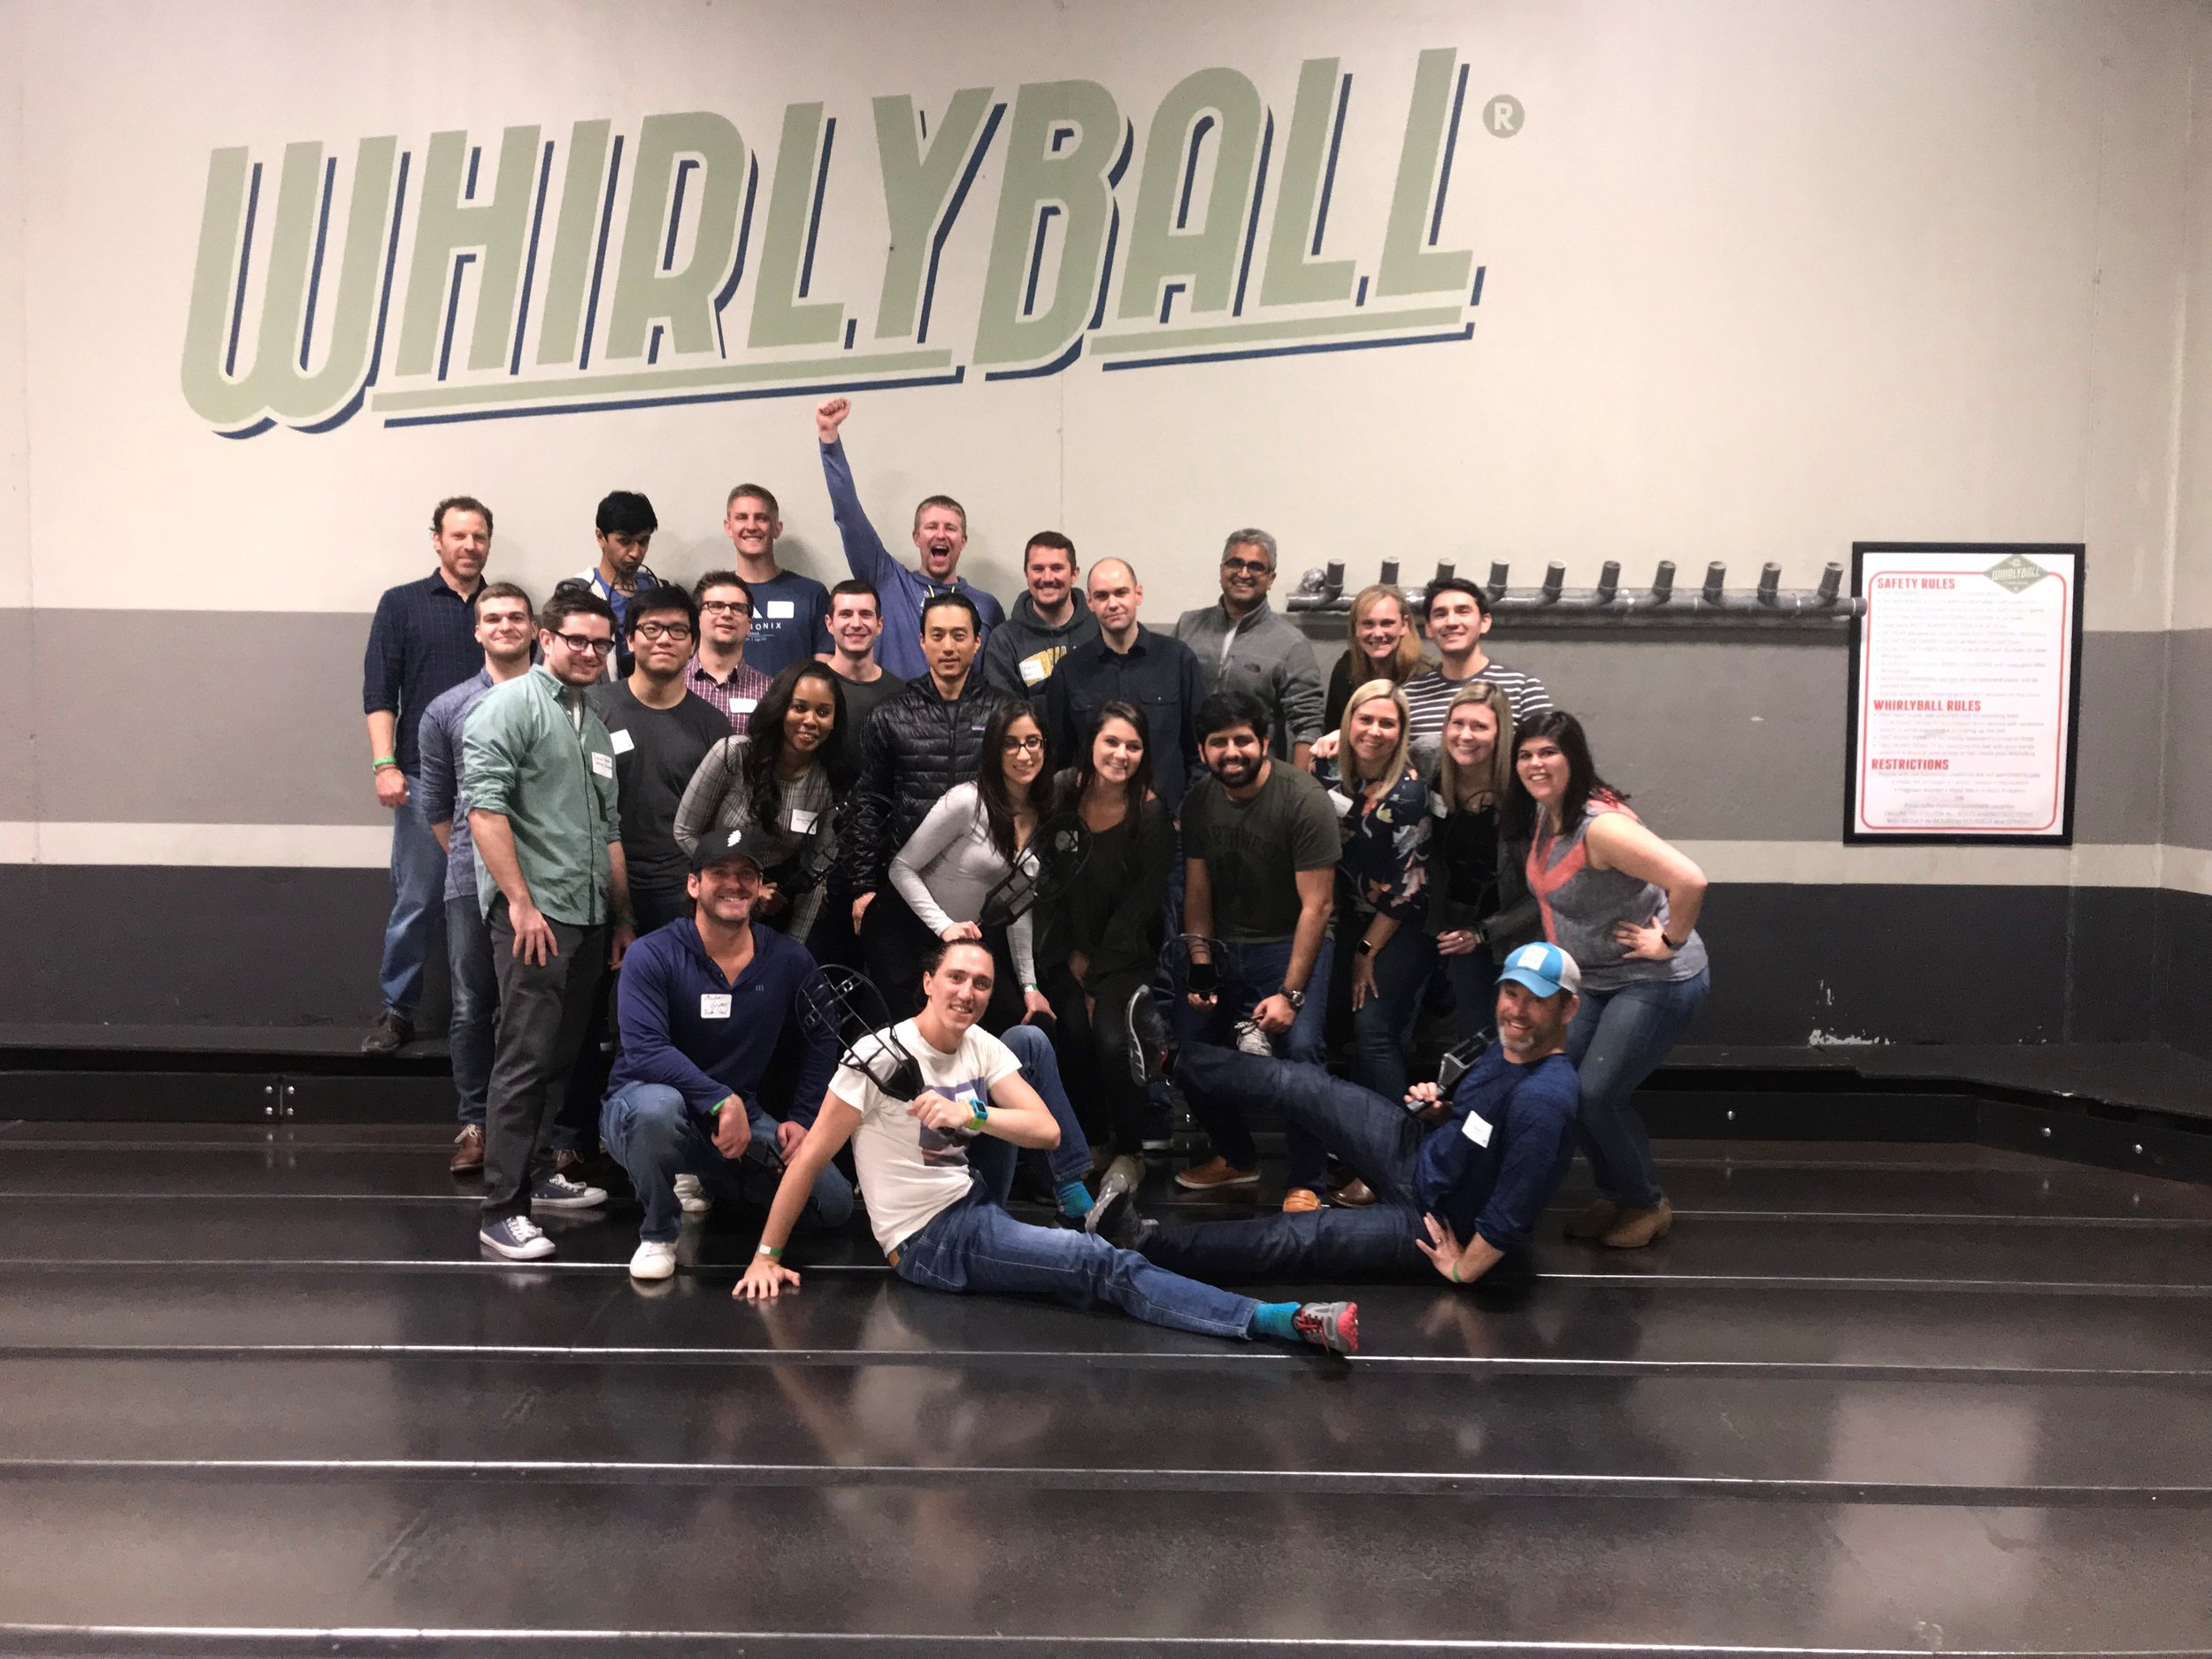 A large group of employees posing for a group photo at a Whirlyball new hire event